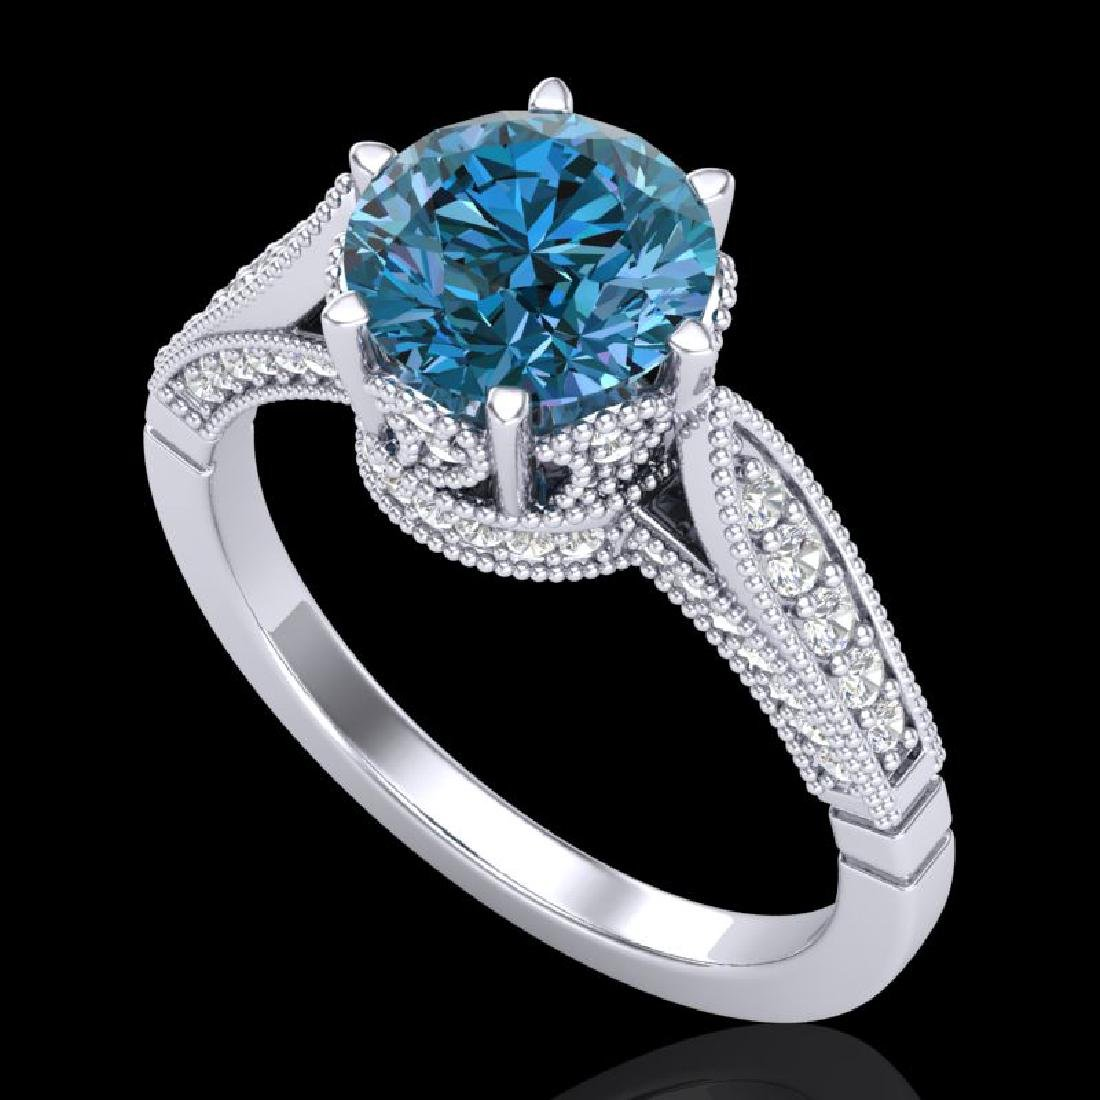 2.2 CTW Intense Blue Diamond Solitaire Engagement Art